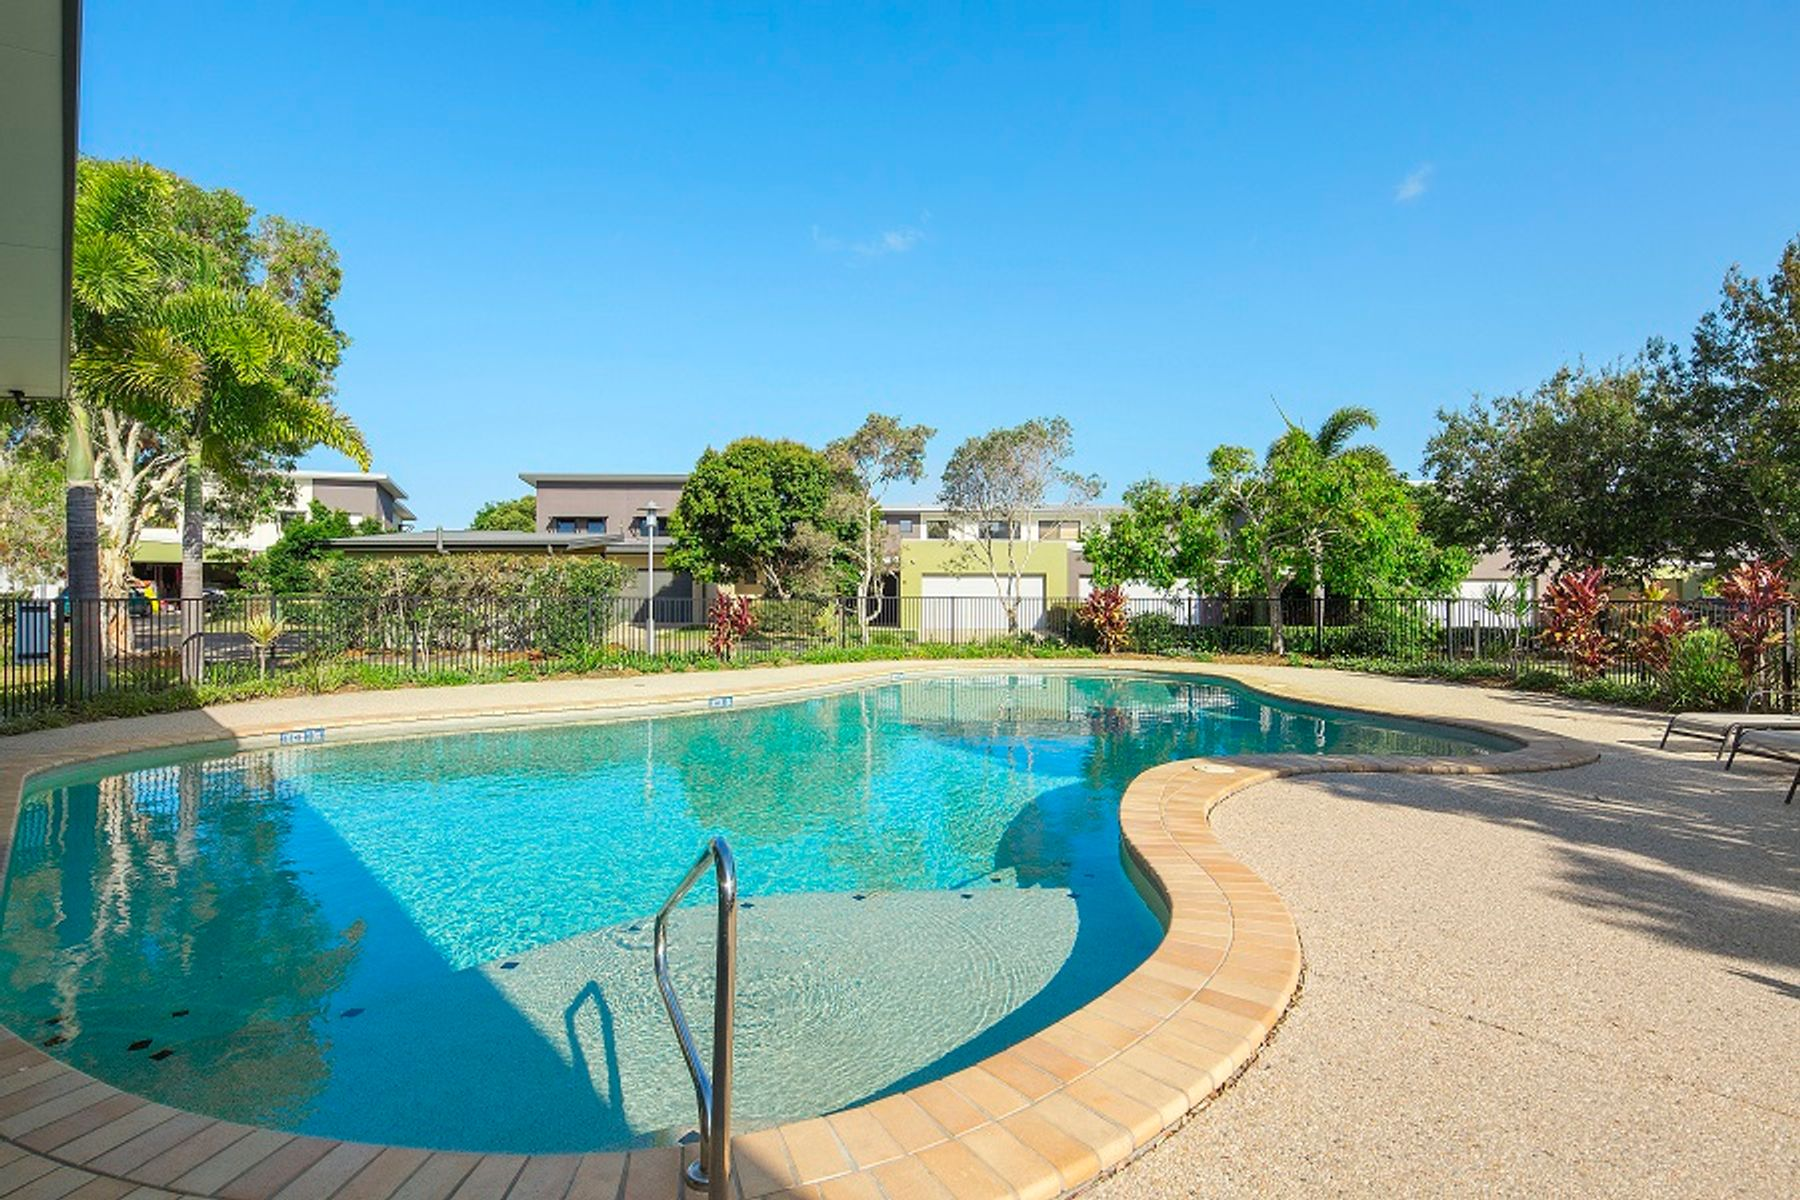 5/2 Lakehead Drive, Sippy Downs, QLD 4556